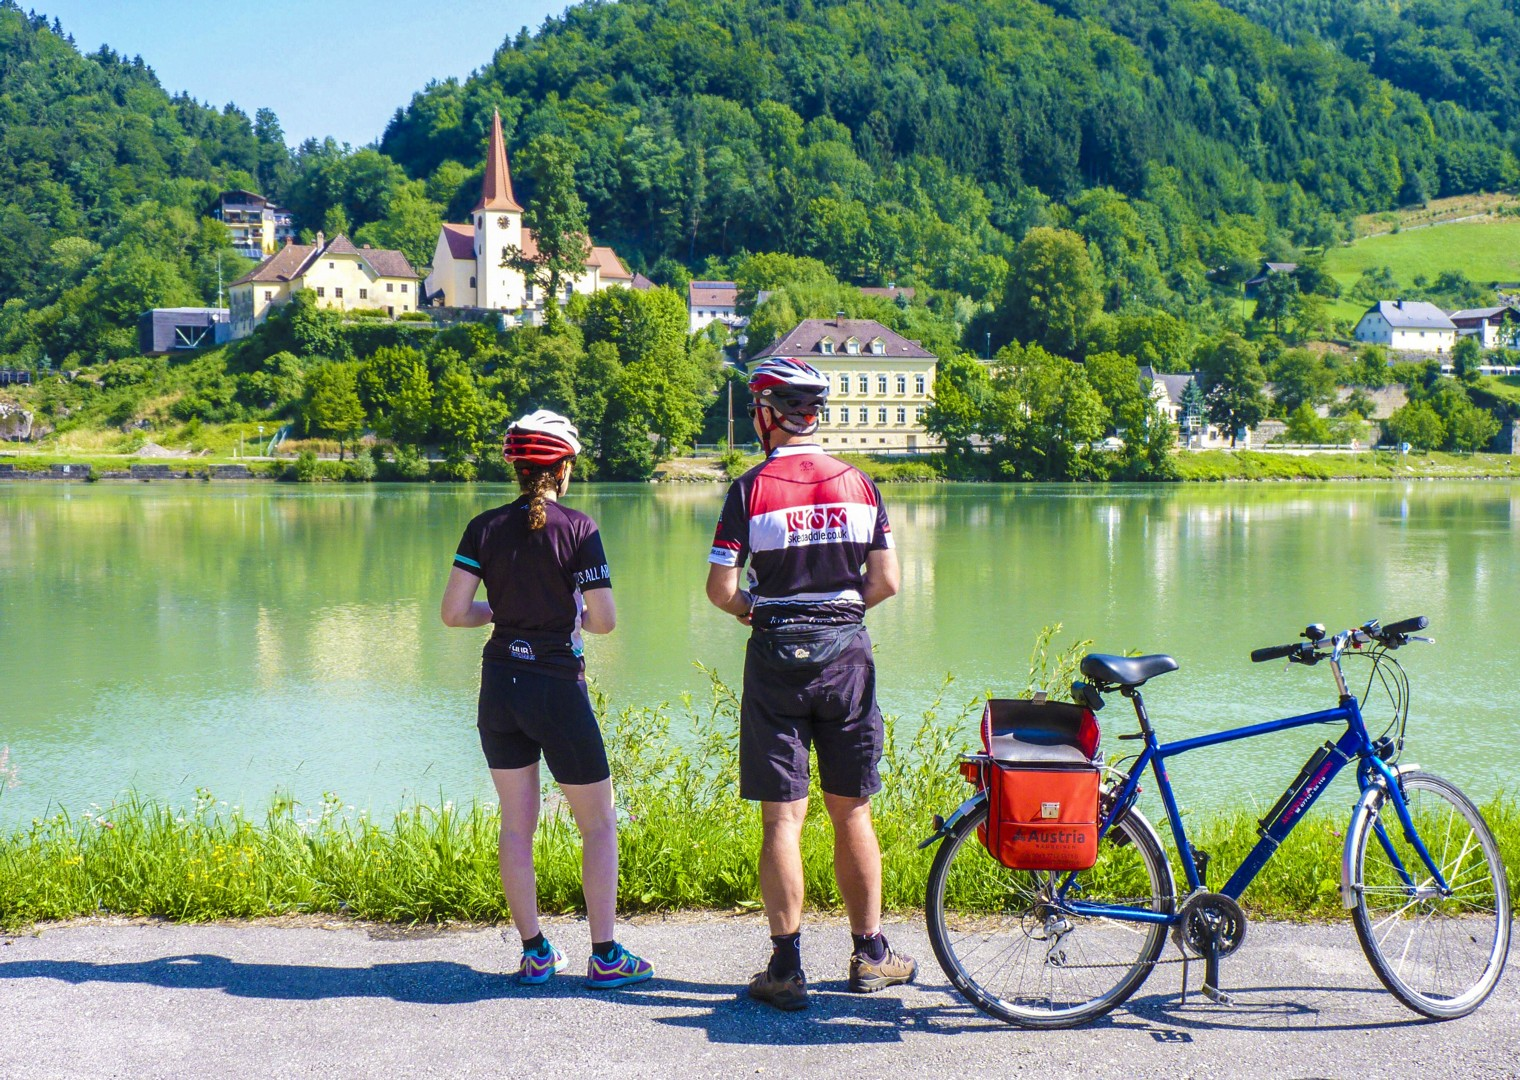 family-cycling-holiday-blue-danube-linz-to-vienna-austria.jpg - Austria - Blue Danube - Linz to Vienna - Family Cycling